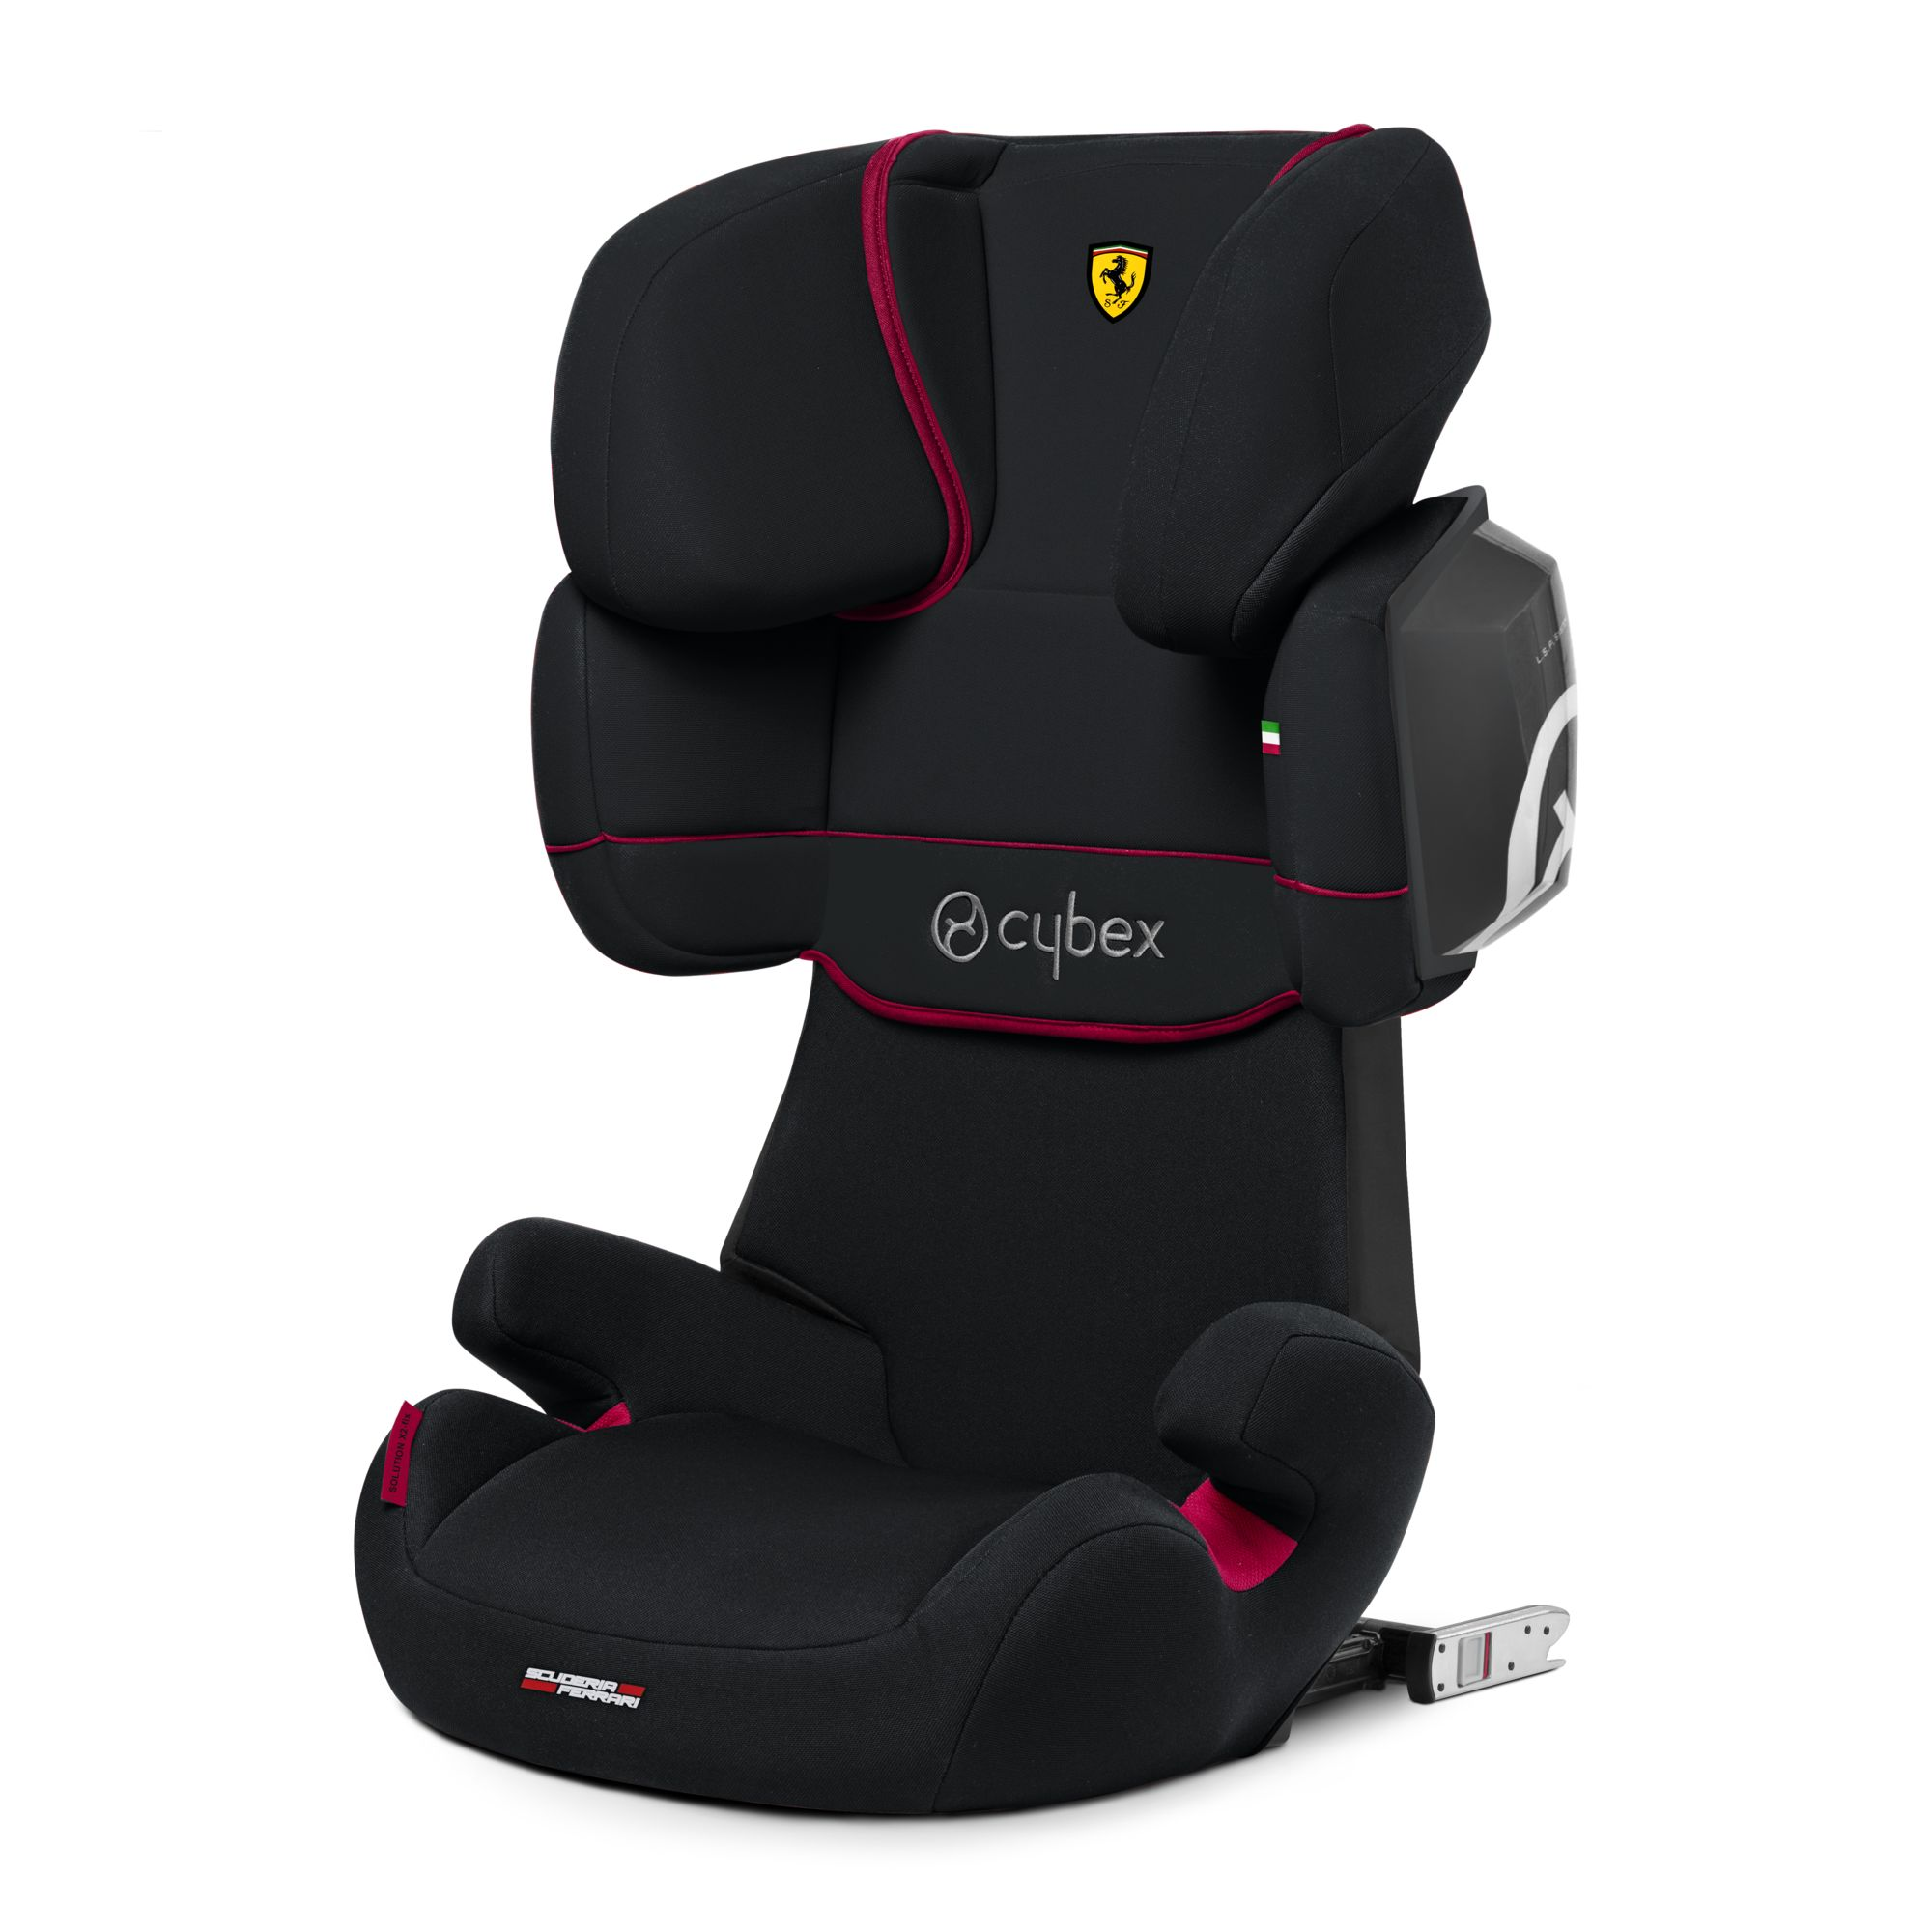 Child Car Safety Seats Cybex 519000245 for girls and boys Baby seat Kids Children chair autocradle booster  Black